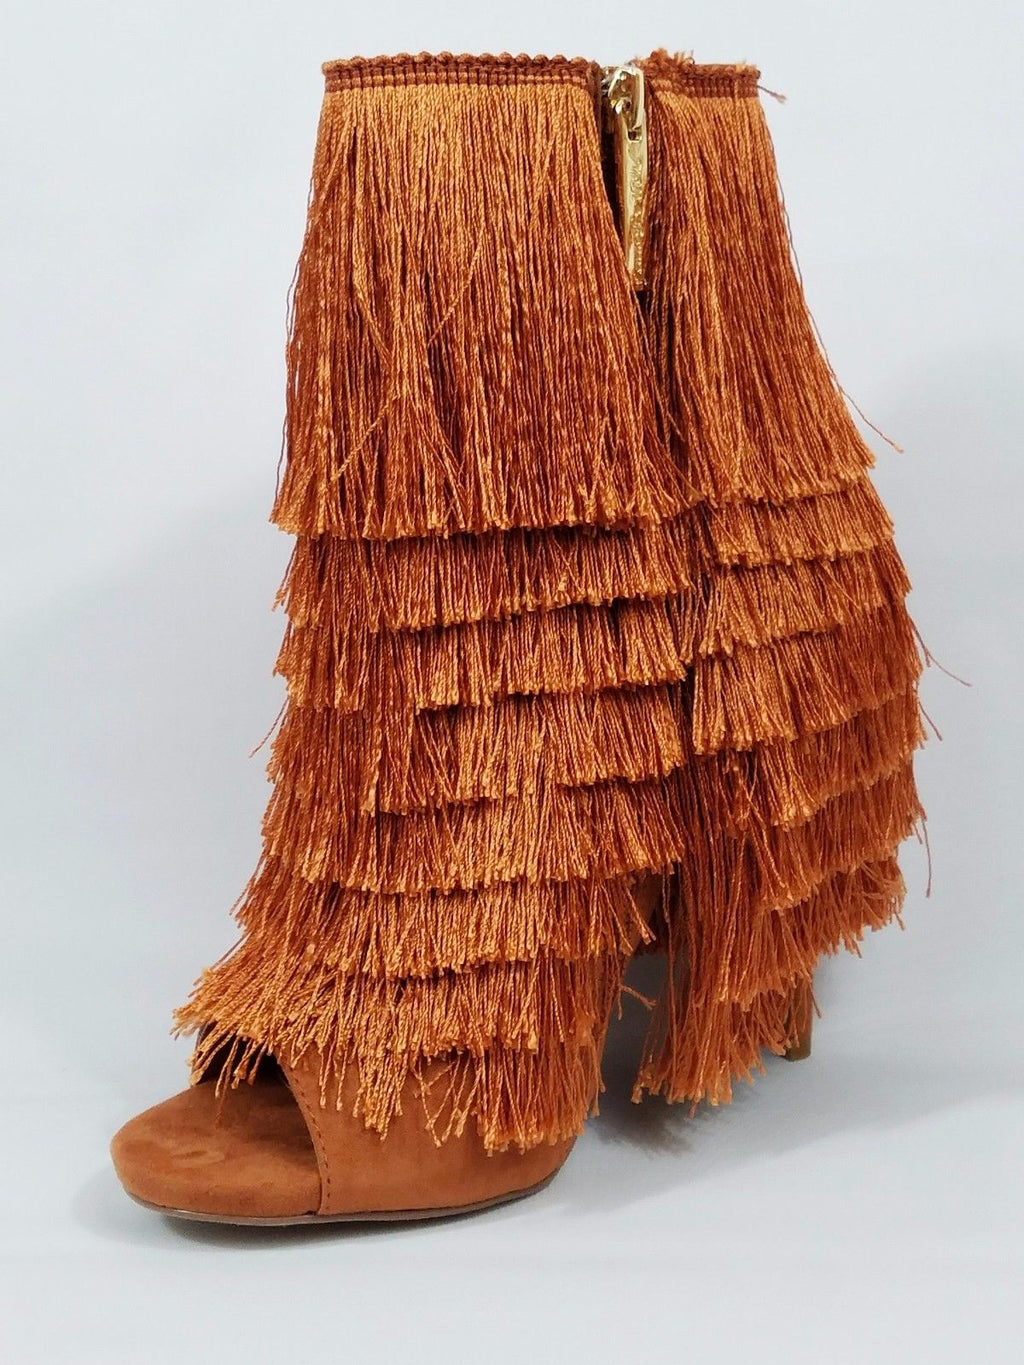 Nelly Bernal B Mambo Copper Fringe Open Toe 4.75 Stiletto High Heel Ankle Boots